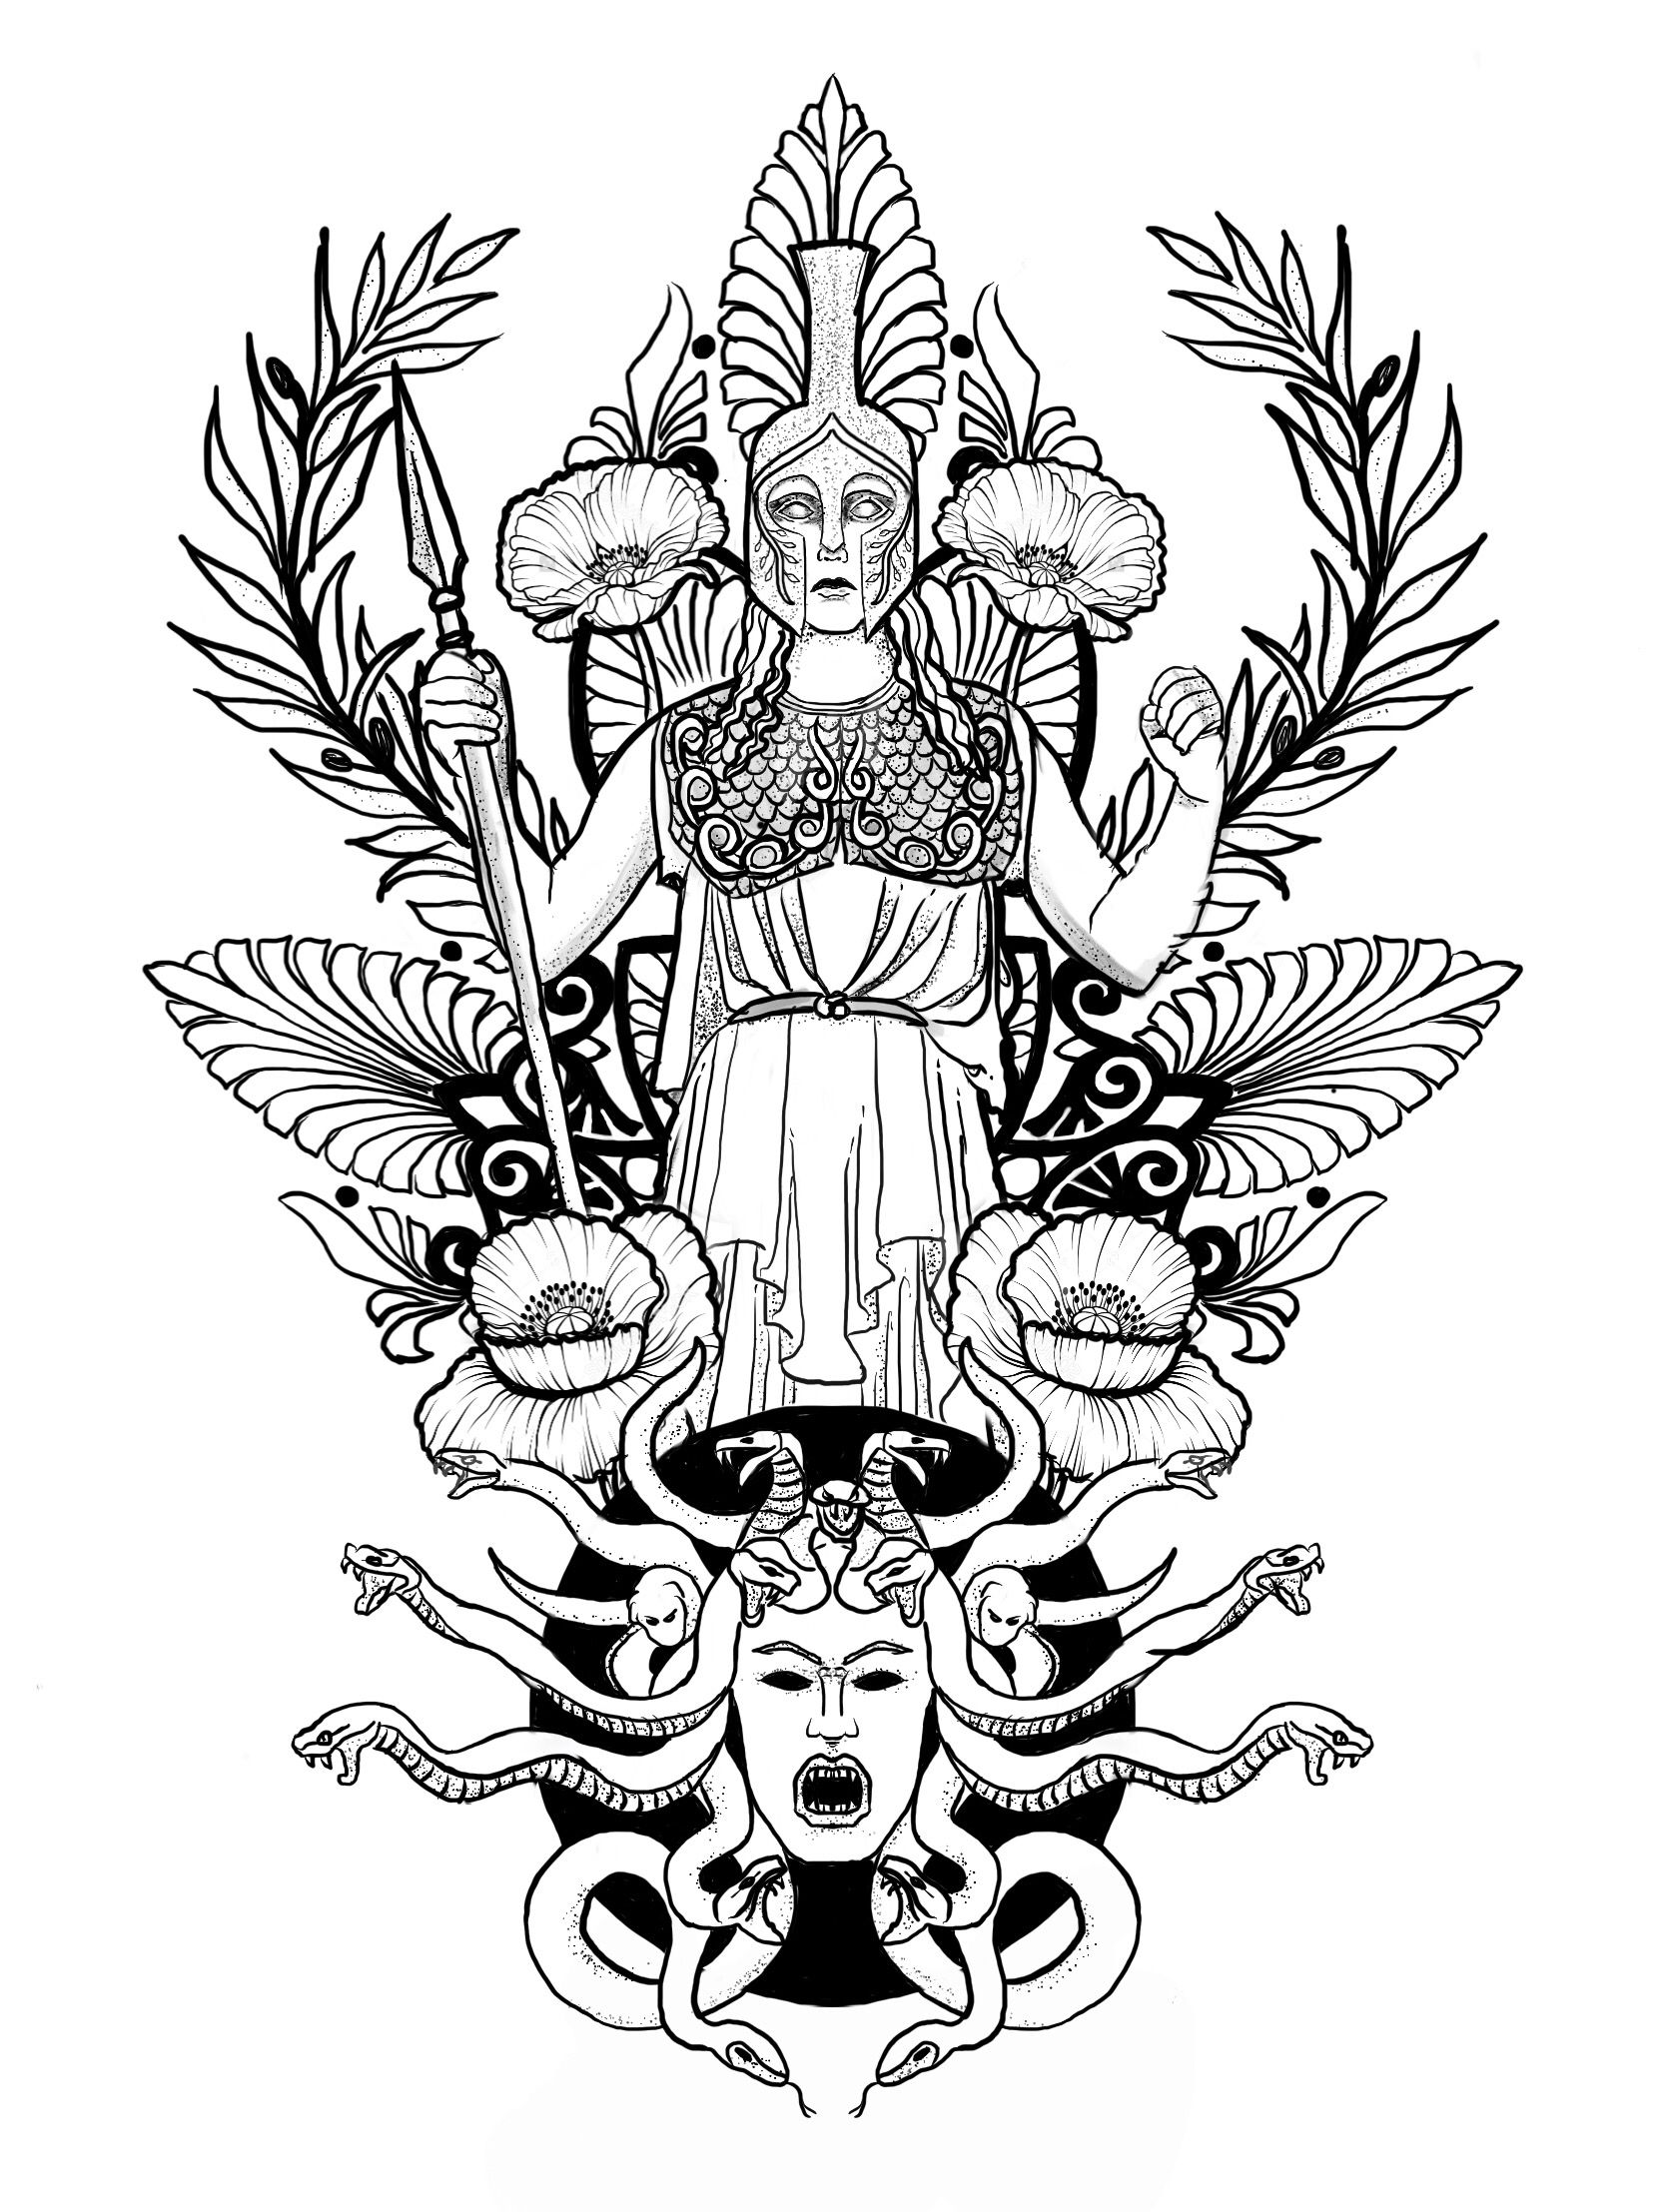 Tattoo design | Athena tattoo reference for Shelby ...